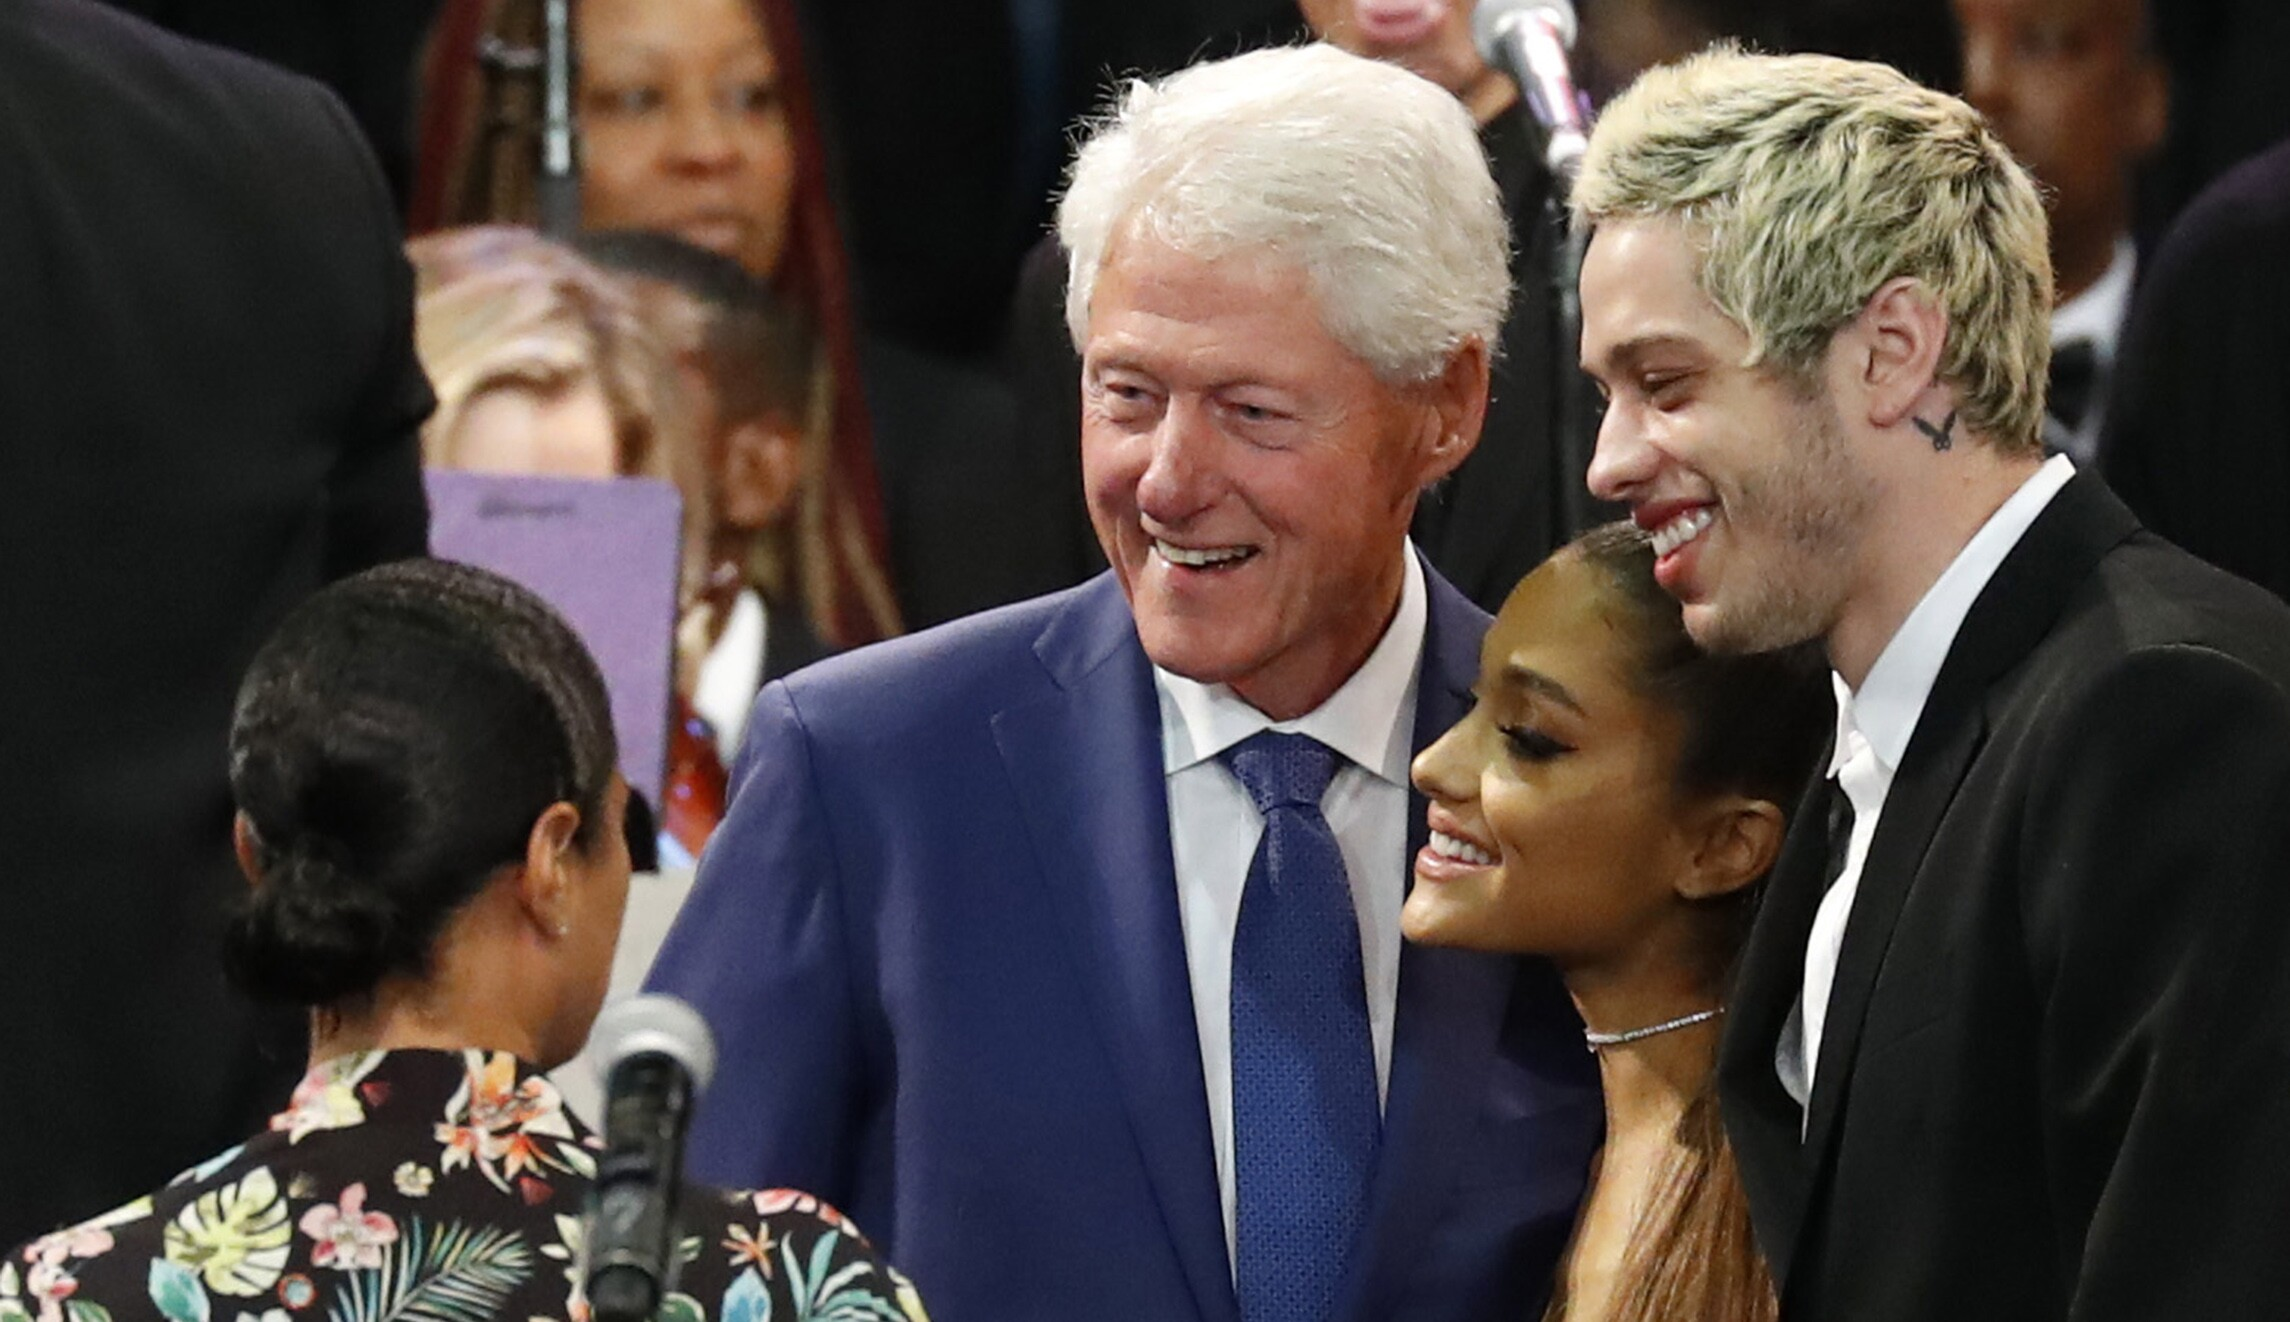 Former President Bill Clinton poses for a photo with Ariana Grande (center) and Pete Davidson (right) during the funeral service